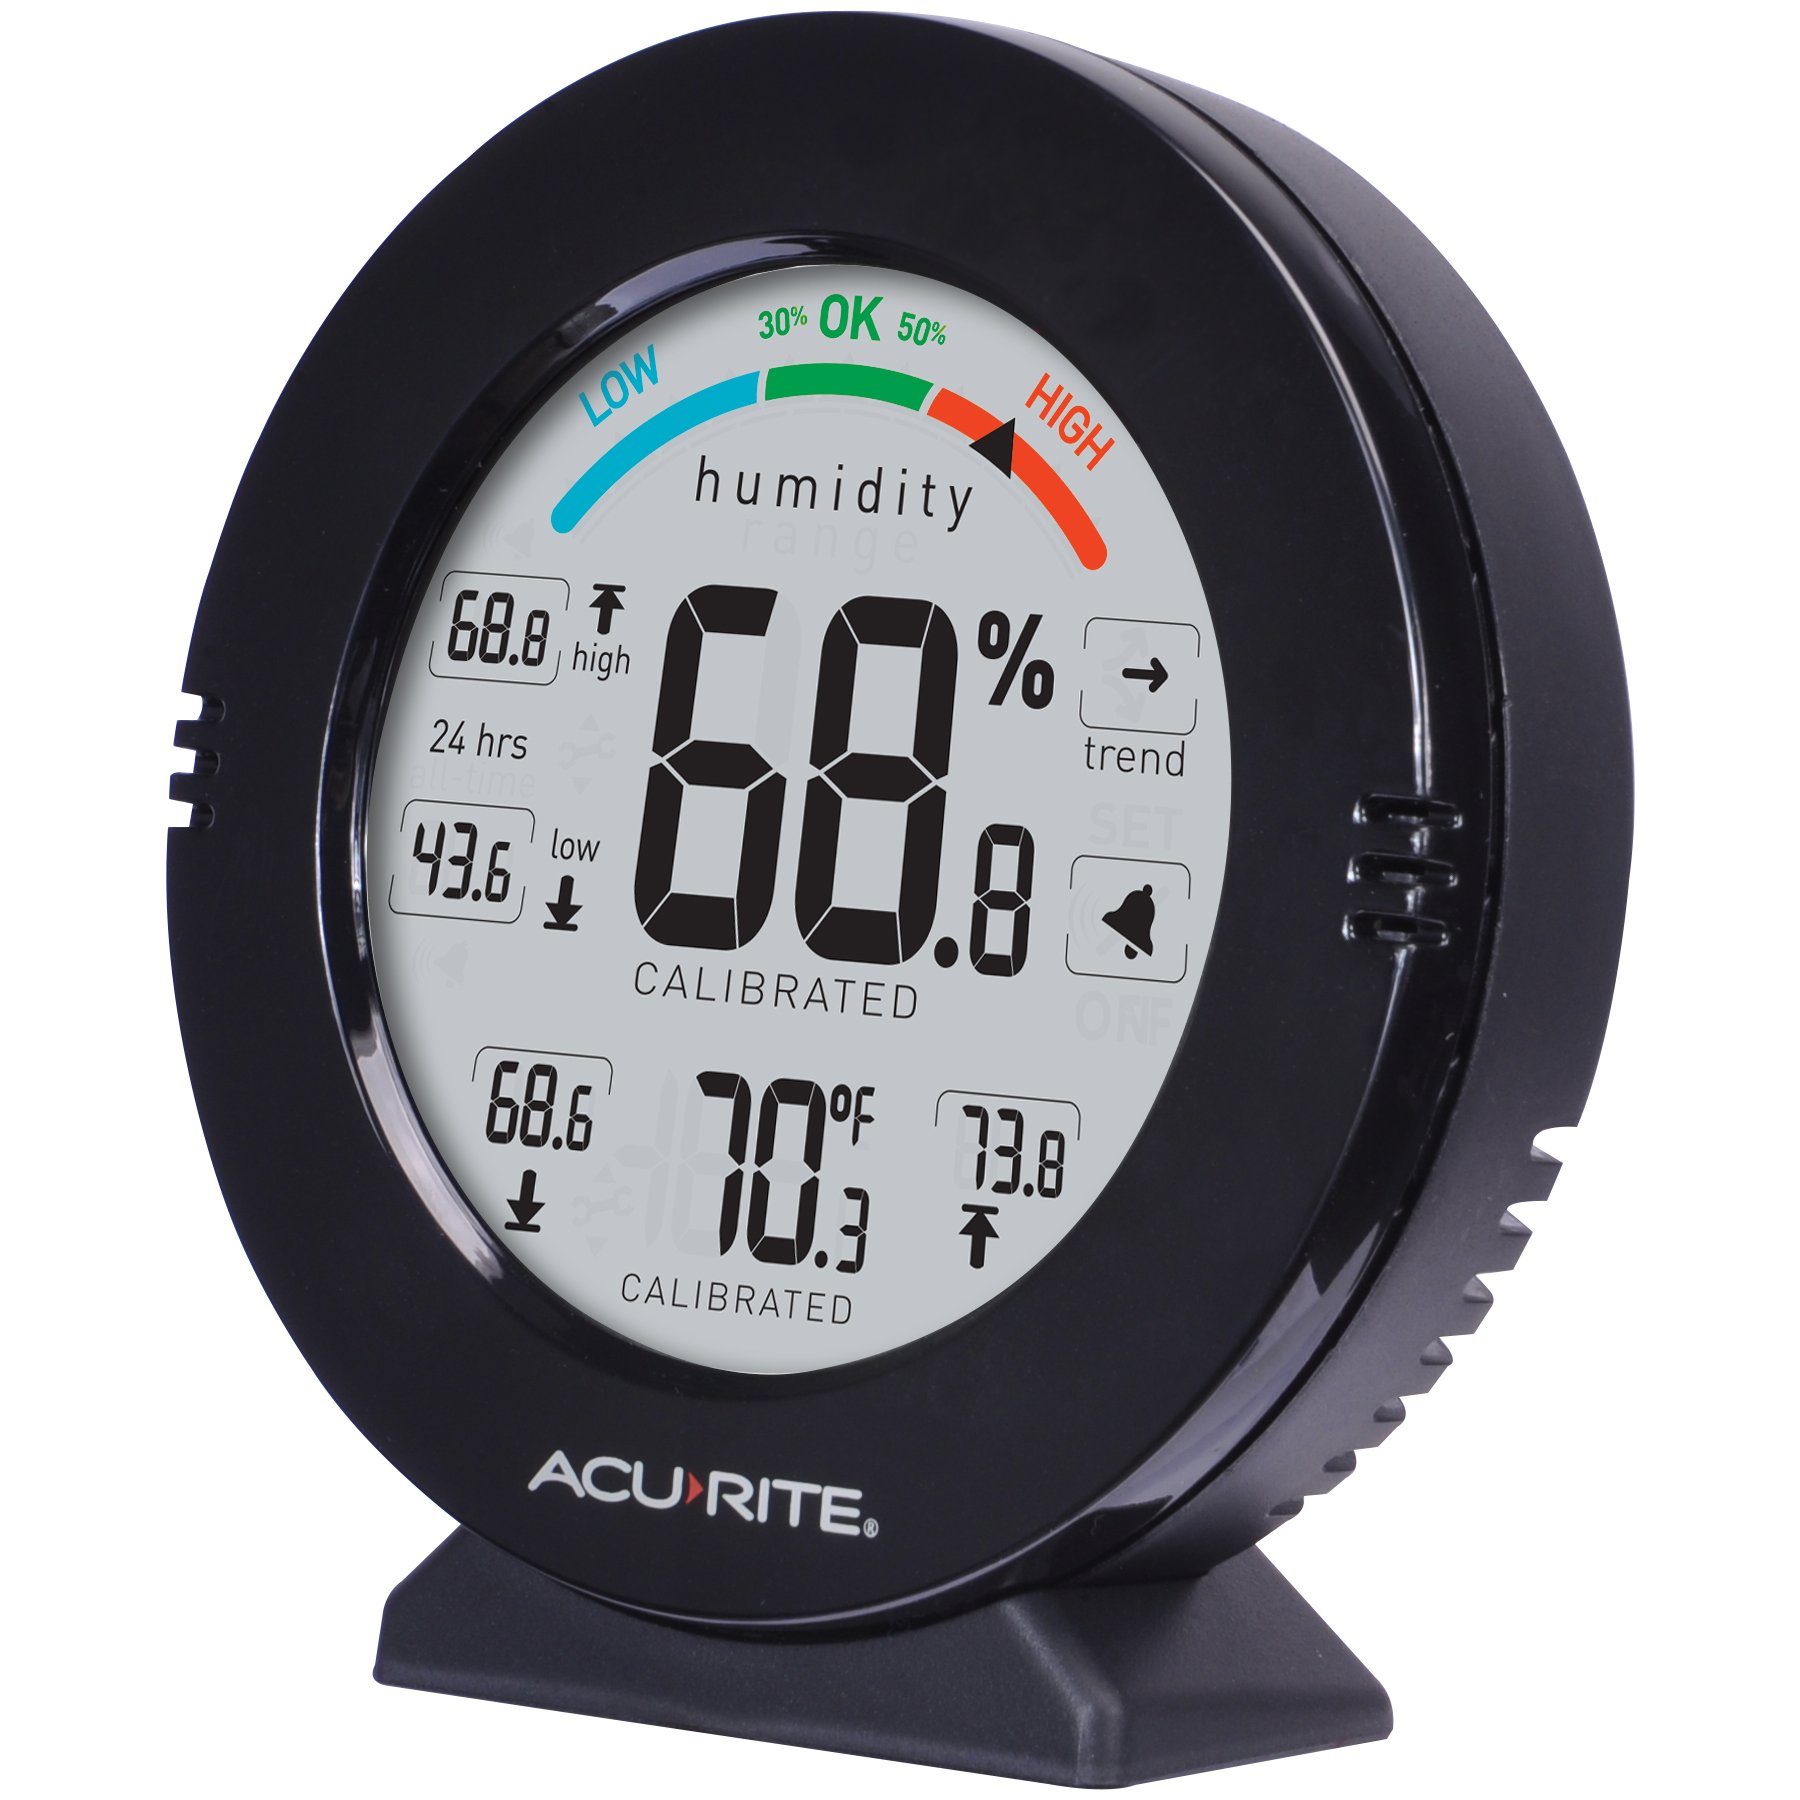 AcuRite 01080M Pro Accuracy Temperature and Humidity Gauge with Alarms, Black by AcuRite